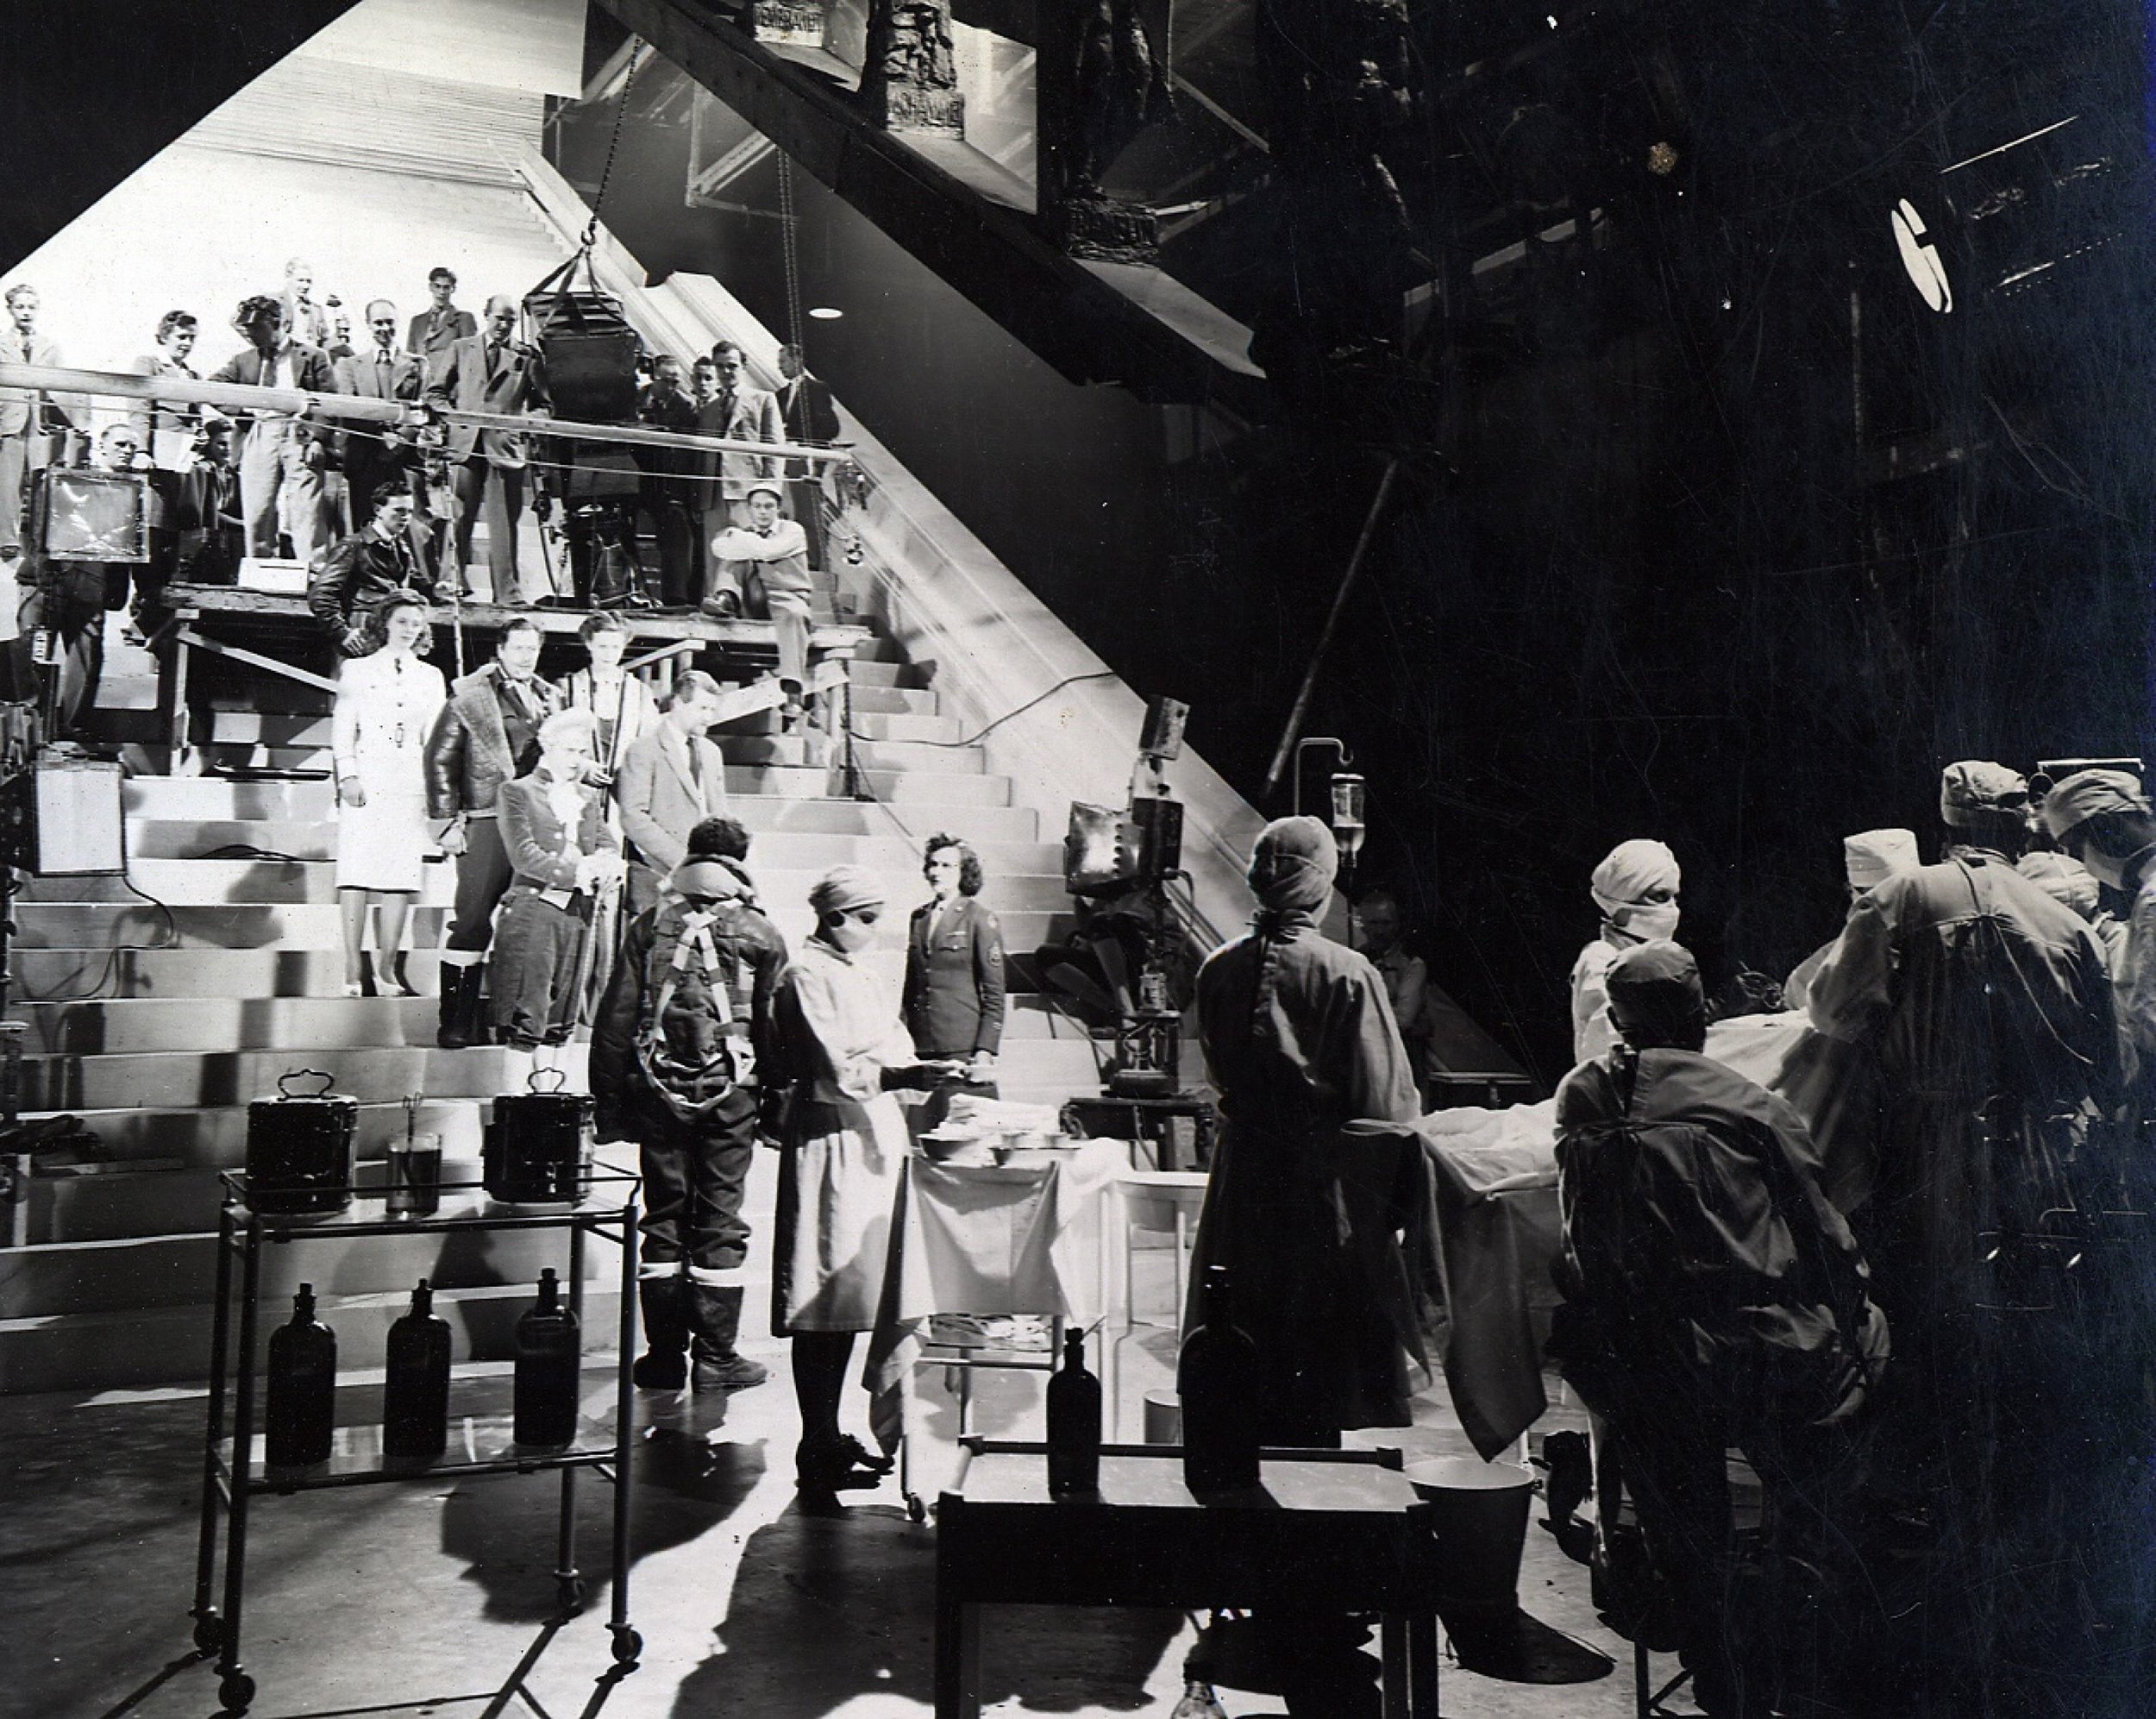 Behind the scenes on the stairway to heaven